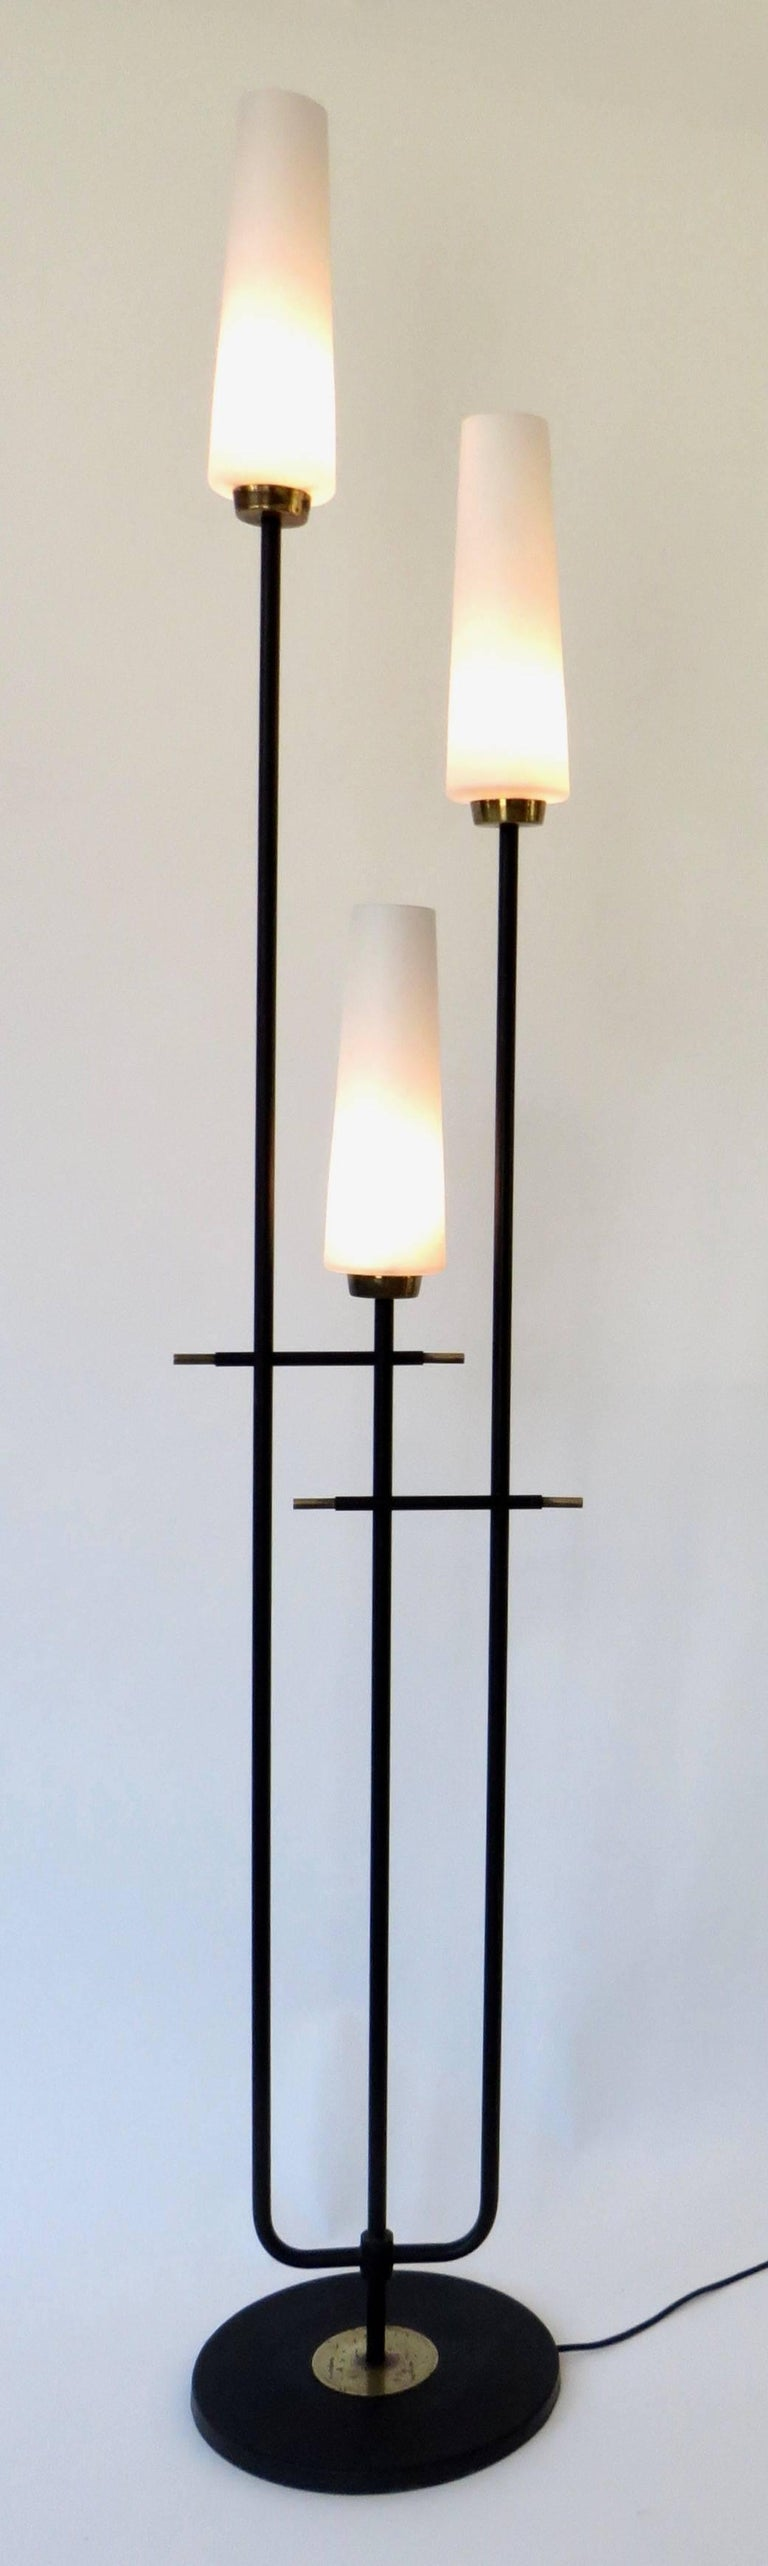 French floor lamp by Maison Lunel, black iron with brass accents, and three cased, blown glass shades. Rewired for USA. Takes candelabra base bulbs, 60w maximum.